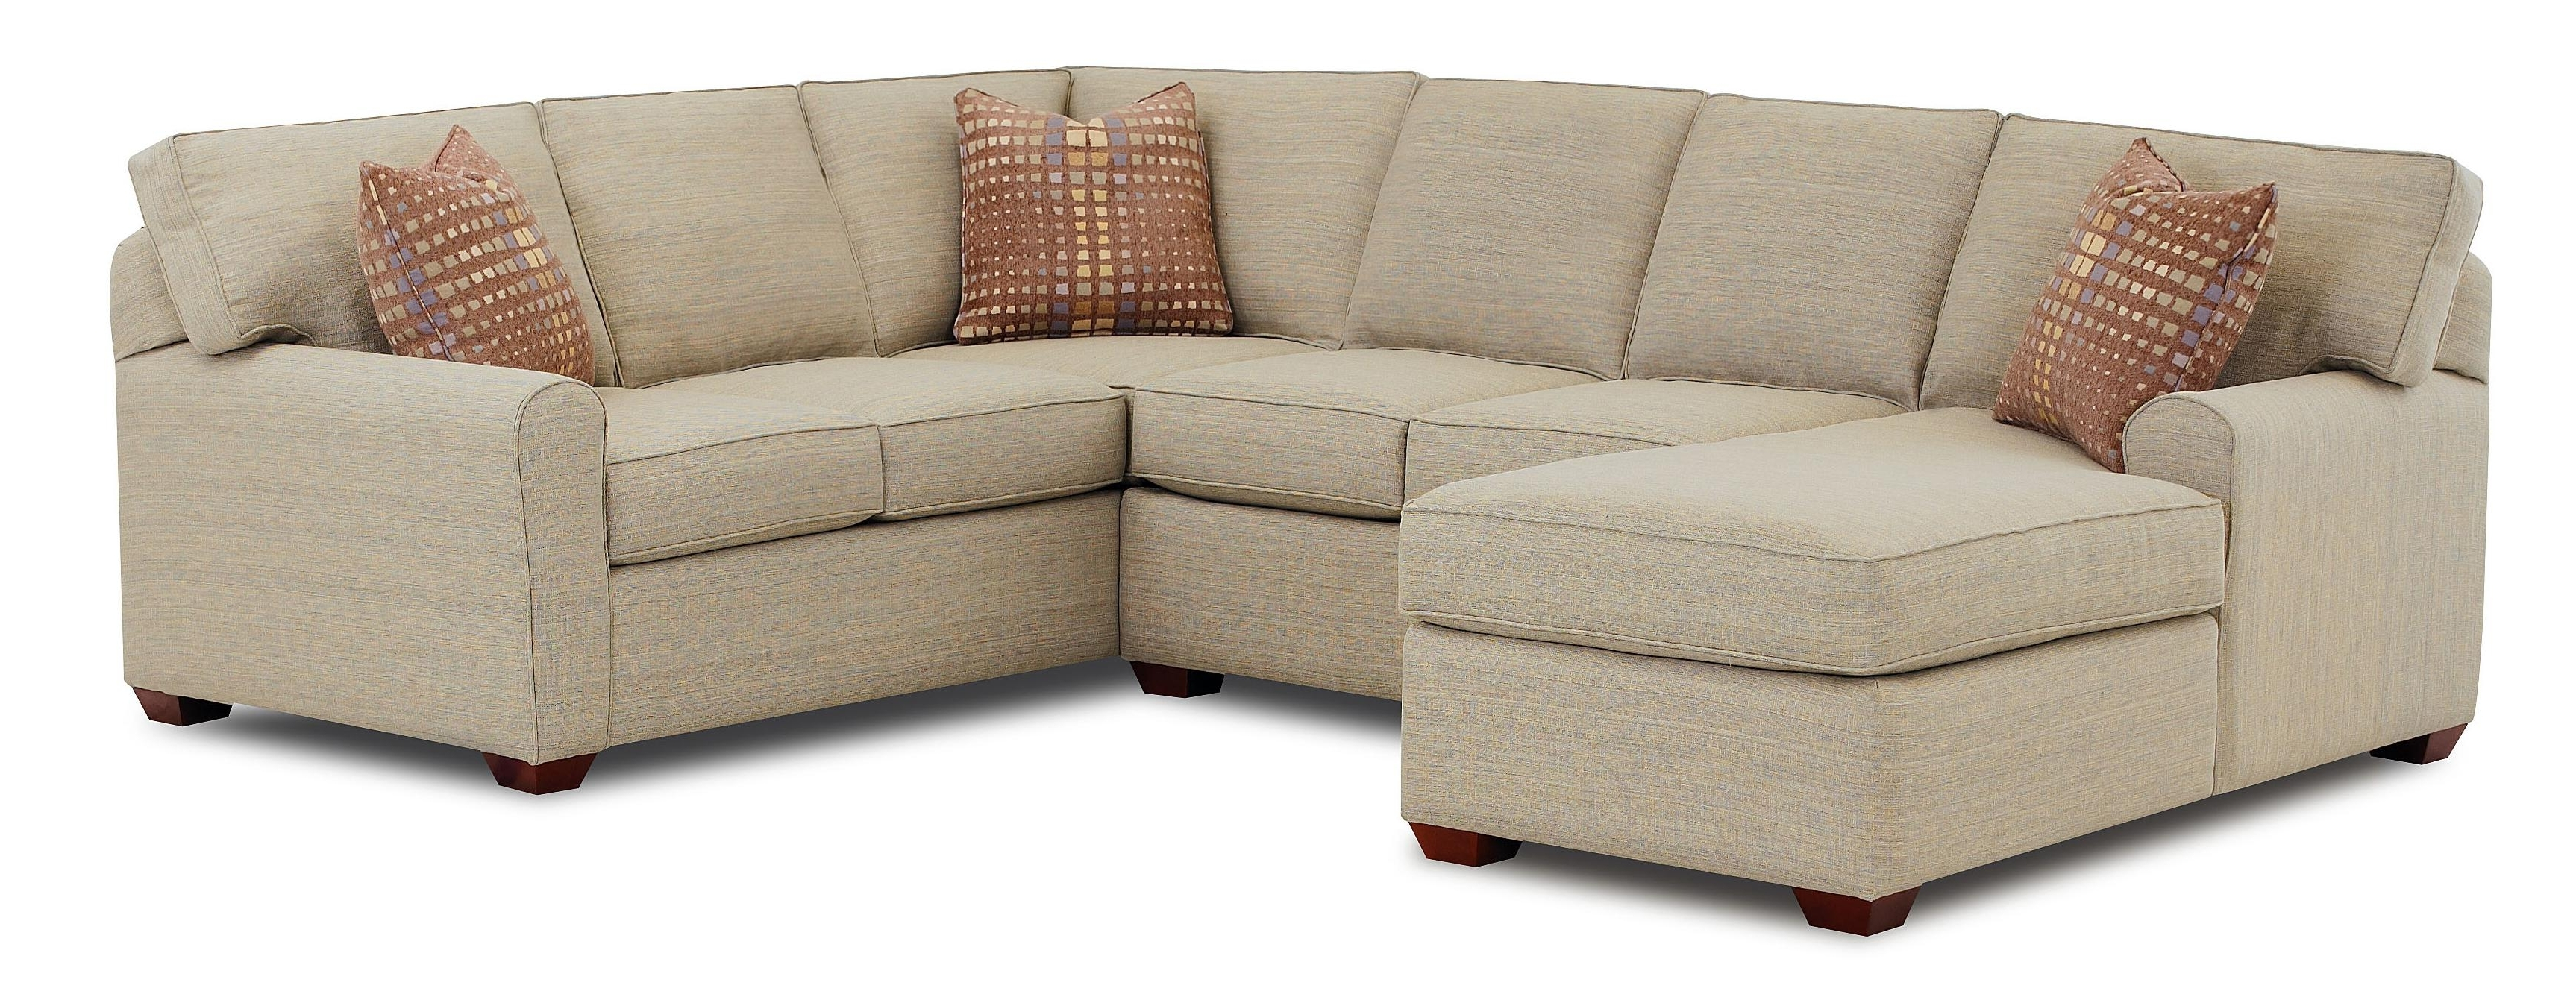 Sofa Chaise Sectionals regarding Most Popular Sectional Sofa With Left-Facing Chaise Loungeklaussner